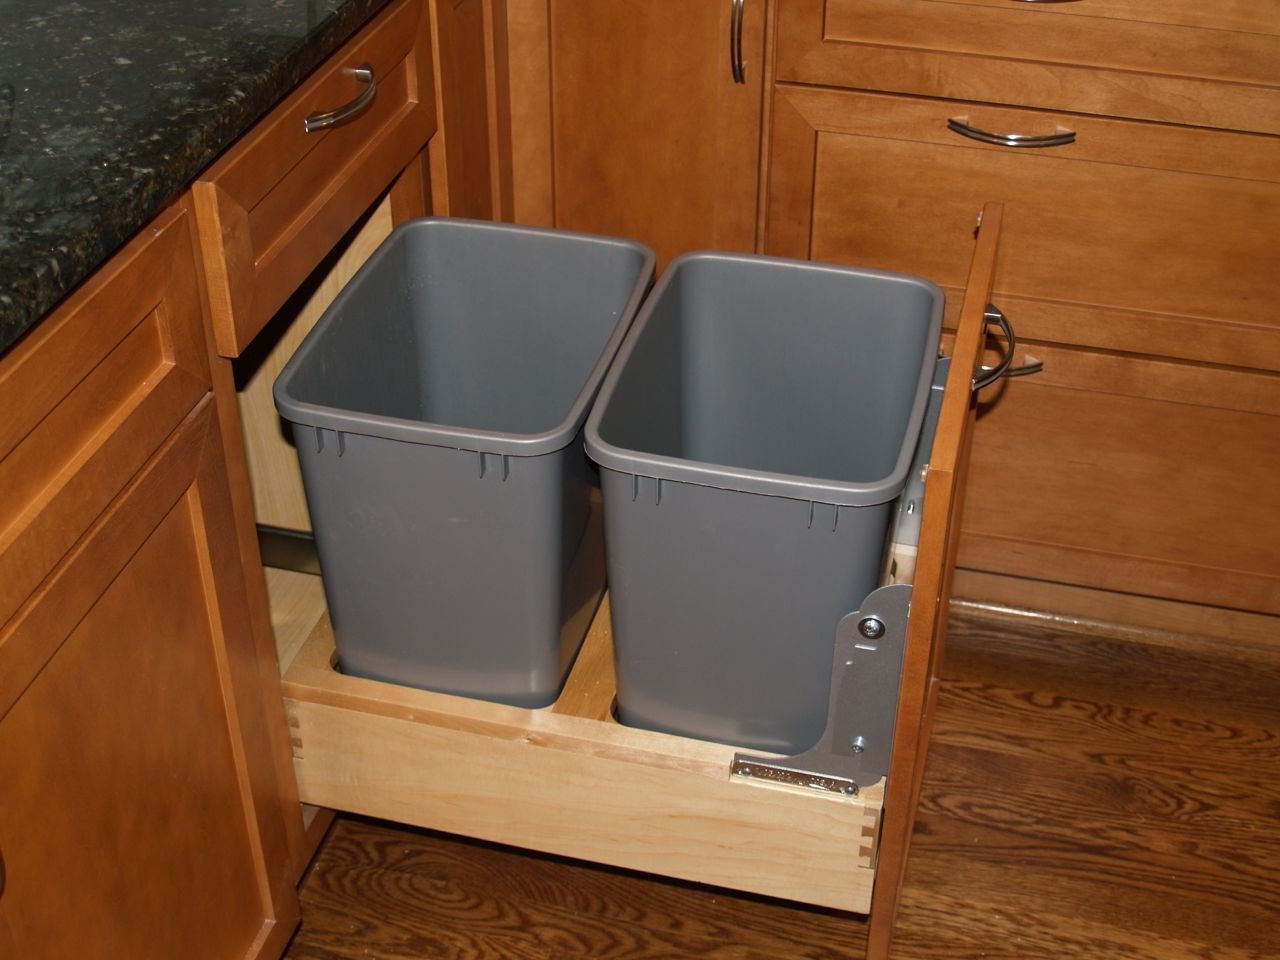 Kitchen Garbage Solutions Ikea Recycling Bin More Than Just Waste Sorting Homesfeed